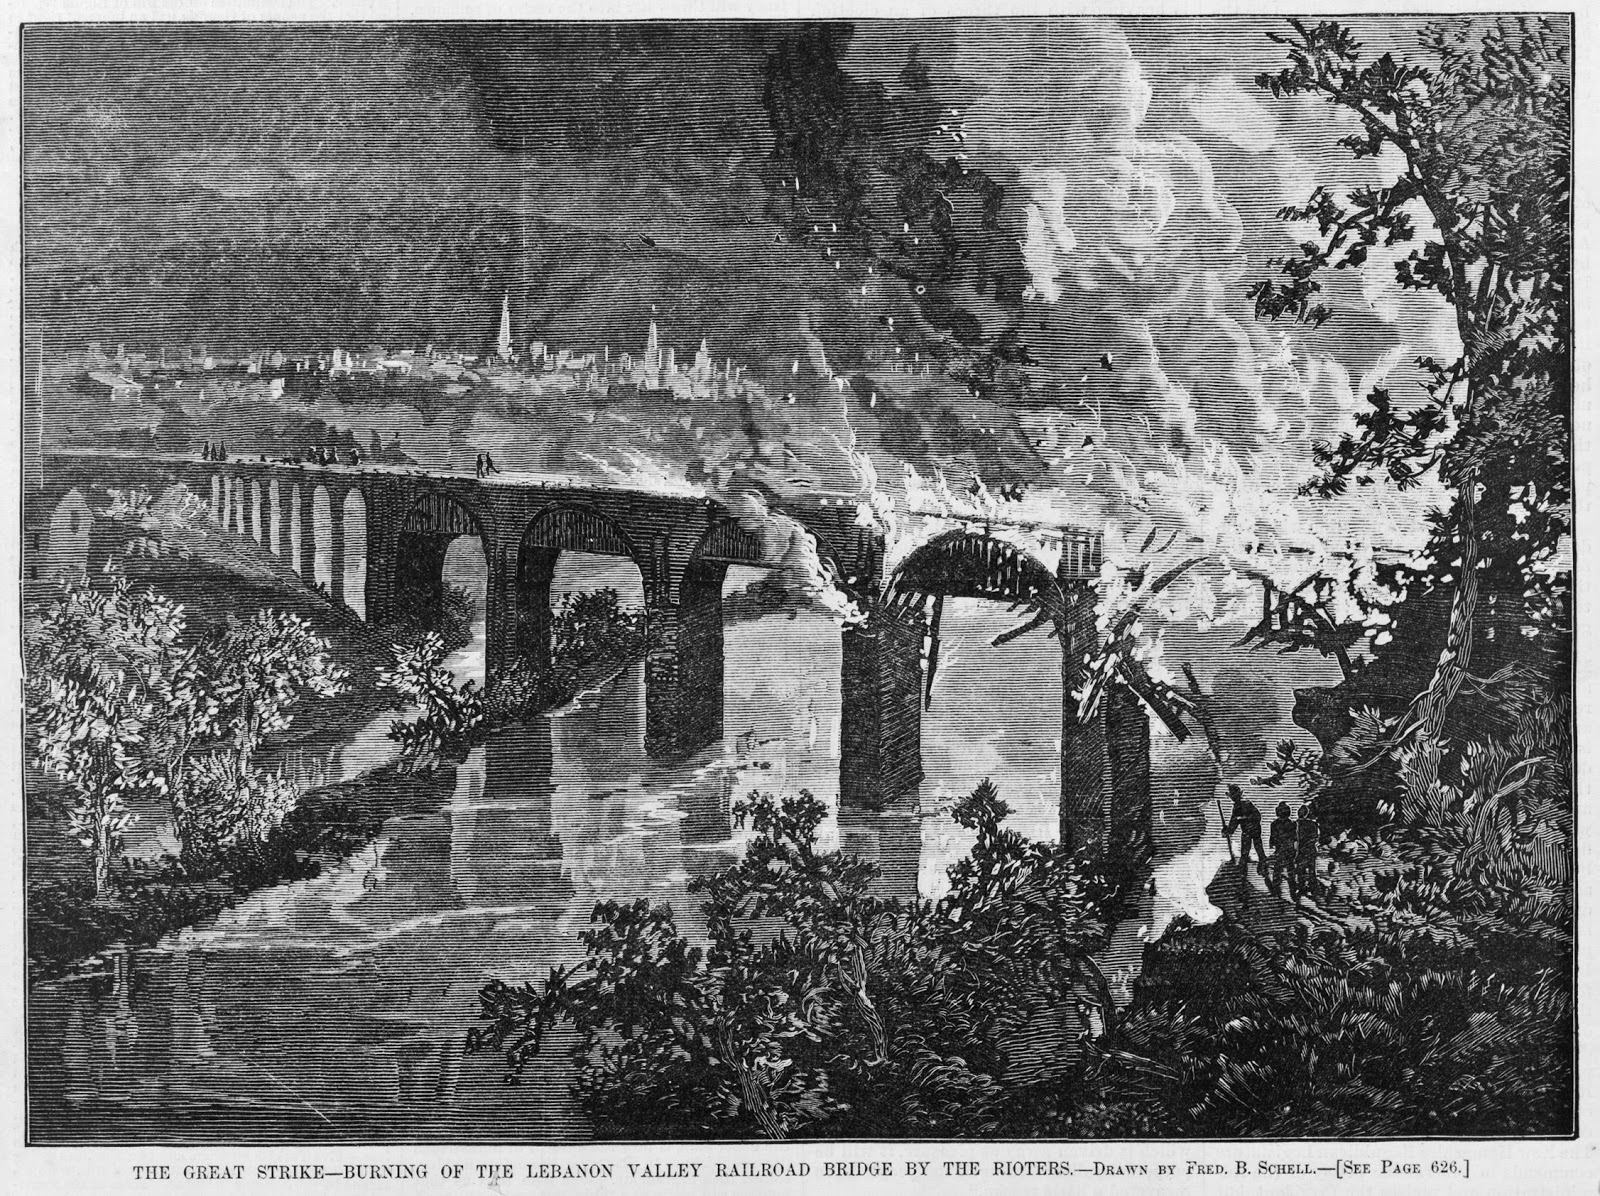 Harper's Weekly, Riot of 1877 Lebanon Valley railroad bridge, marked as public domain, more details on Wikimedia Commons | Burning During the Great Railroad Strike of 1877